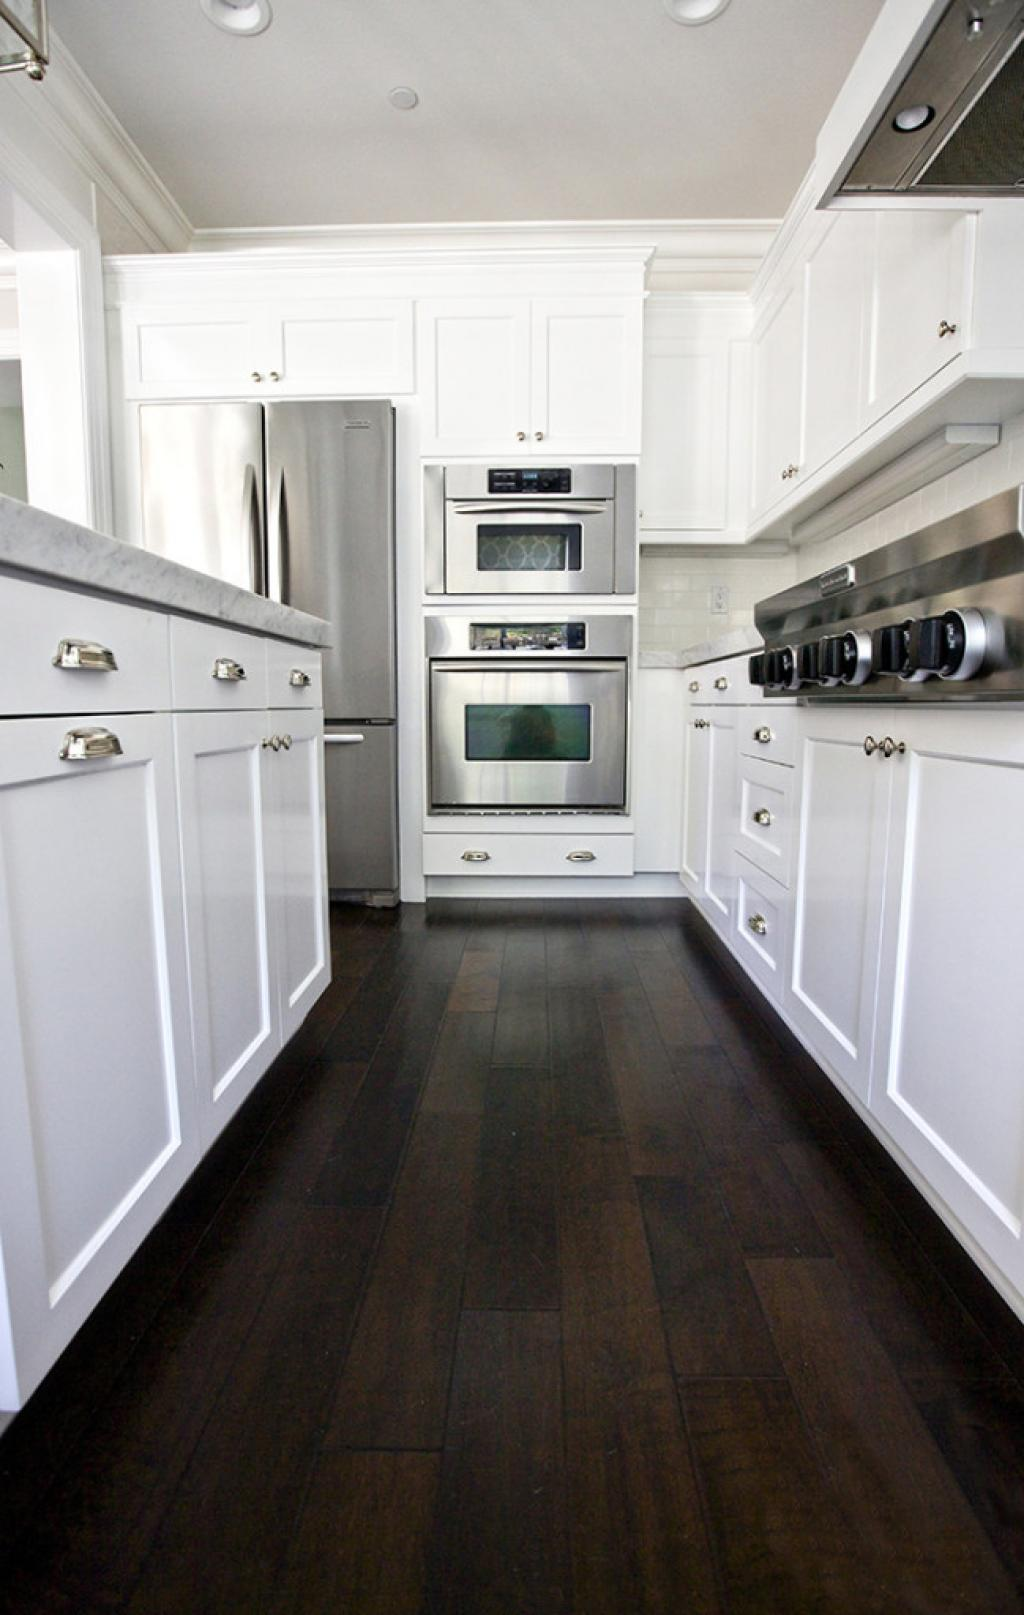 Wood floors in modern kitchen for Hardwood floors kitchen